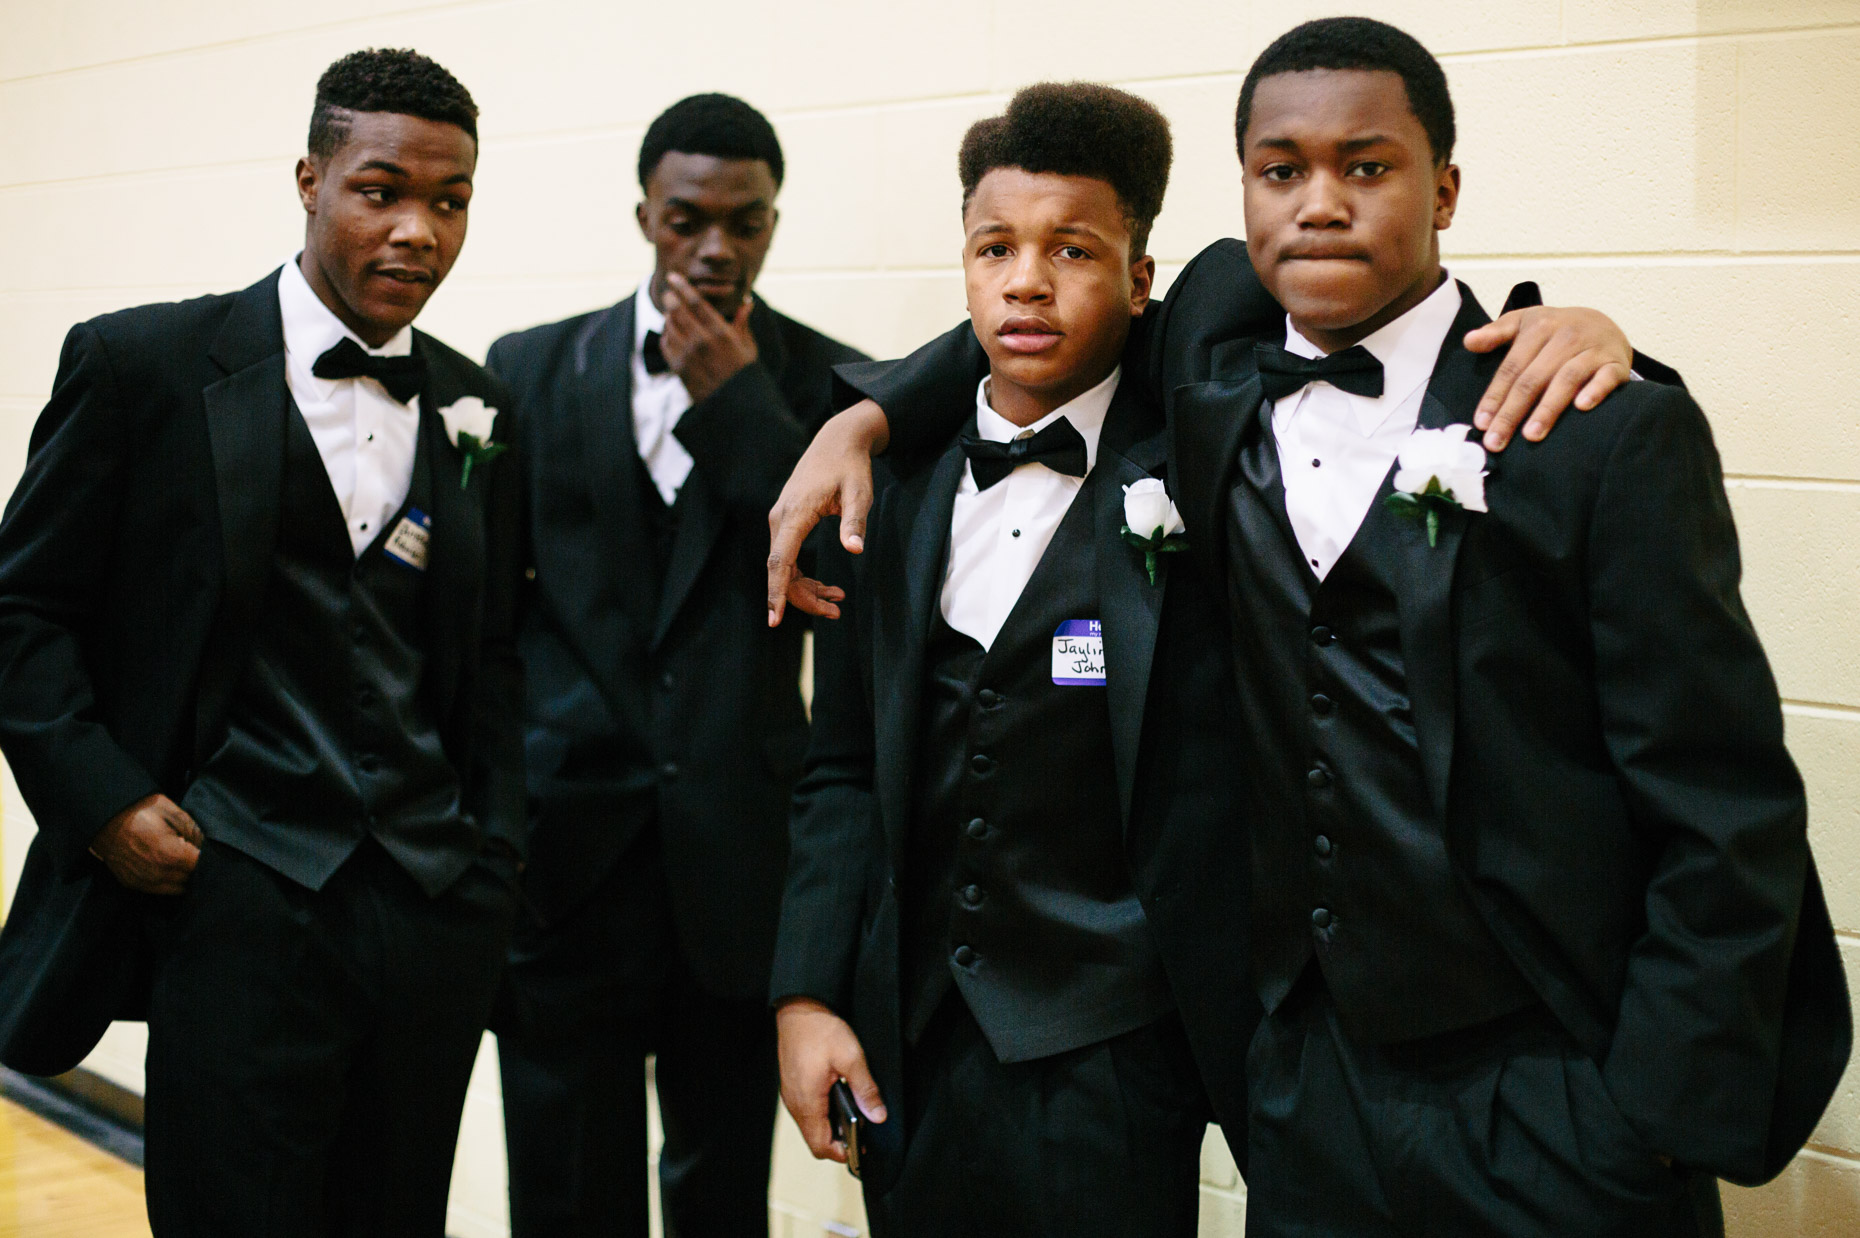 A boy gather in the gymnasium of the Northcott Neighborhood House during the 500 Black Tuxedos Event, organized by Andre Lee Ellis, on Saturday December 12th, 2015 in Milwaukee, Wisconsin.